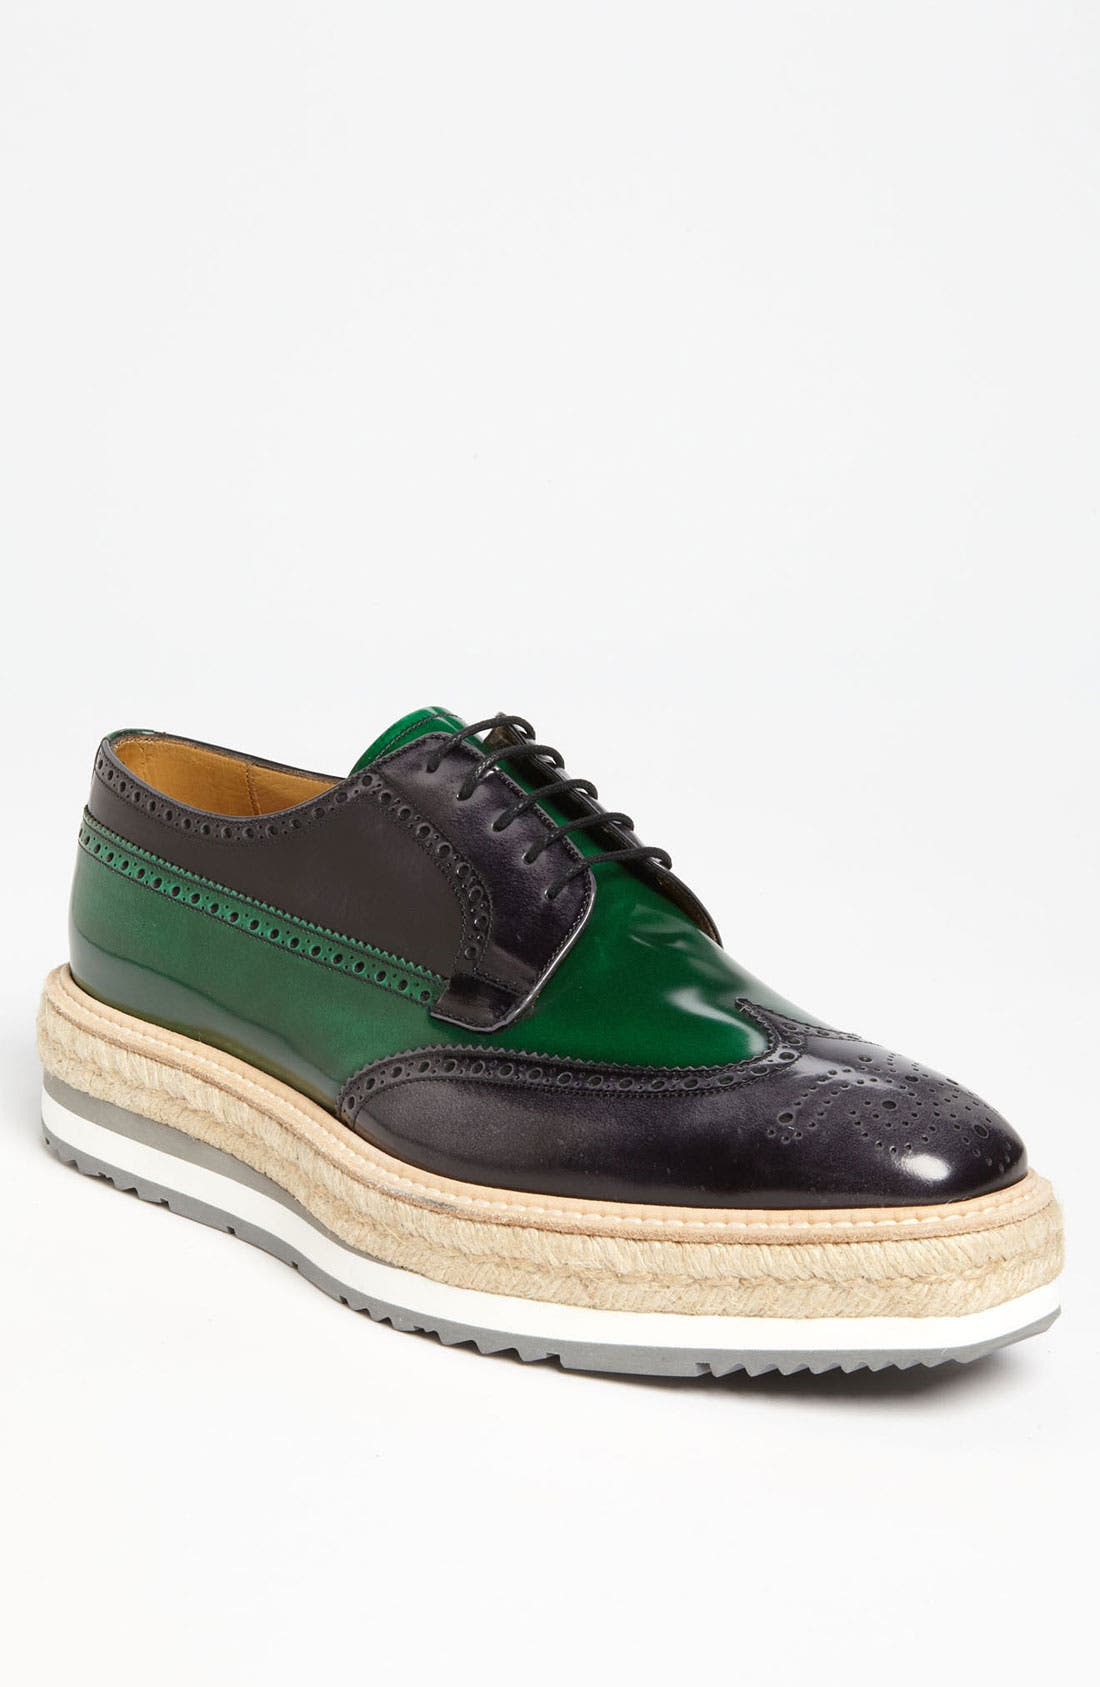 Alternate Image 1 Selected - Prada Double Sole Wing Tip Oxford